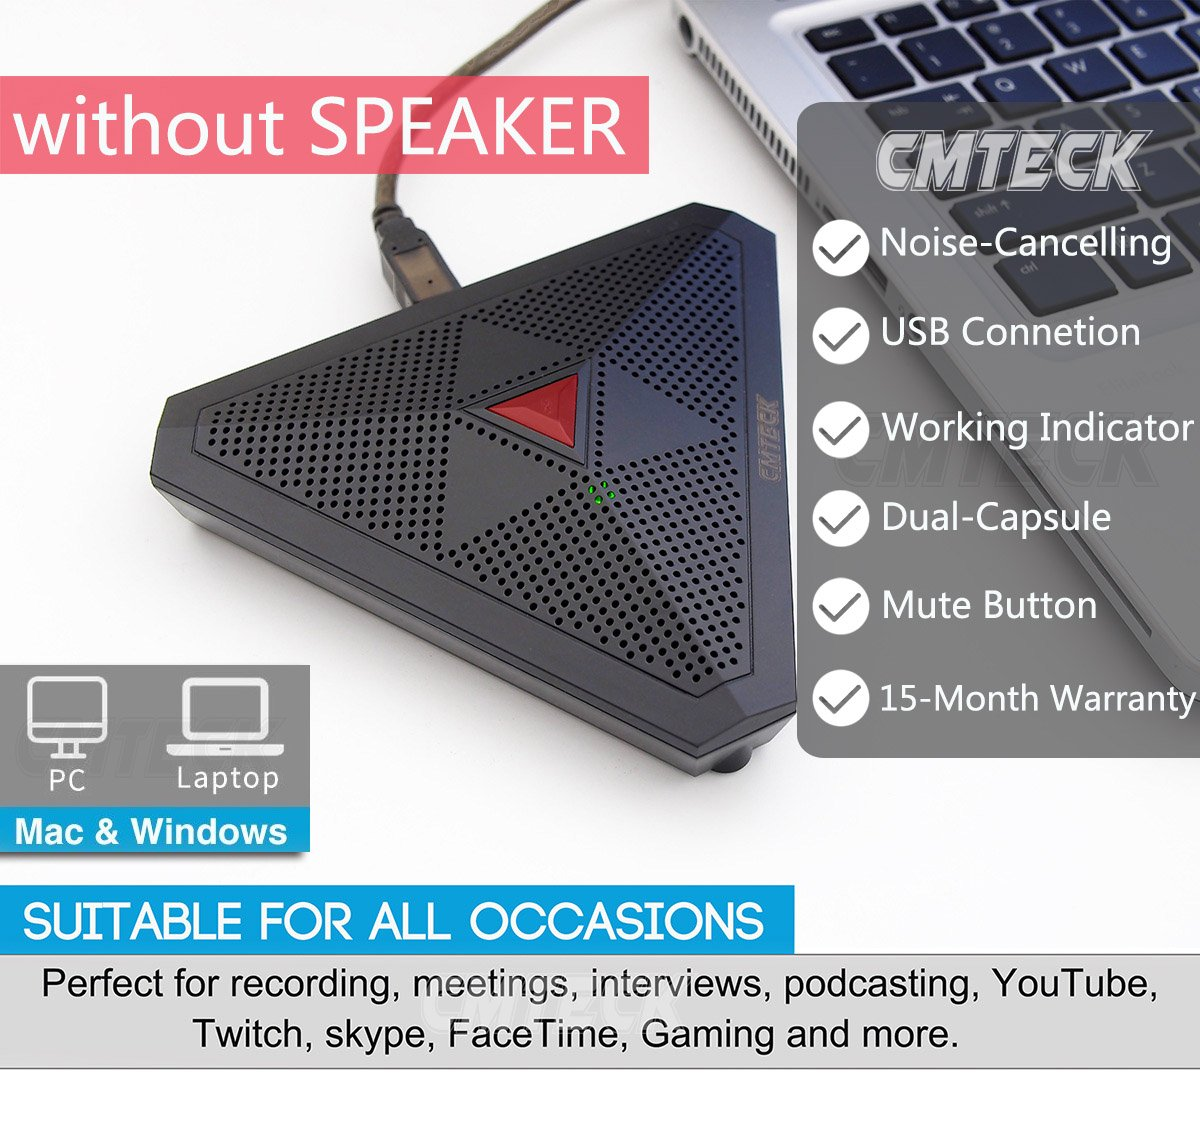 CMTECK USB Desktop Computer CM001R Microphone, Mute Button with LED Indicator, Omnidirectional Condenser Boundary Conference Mic for Recording,Streaming,Gaming,Skype (Windows/Mac)